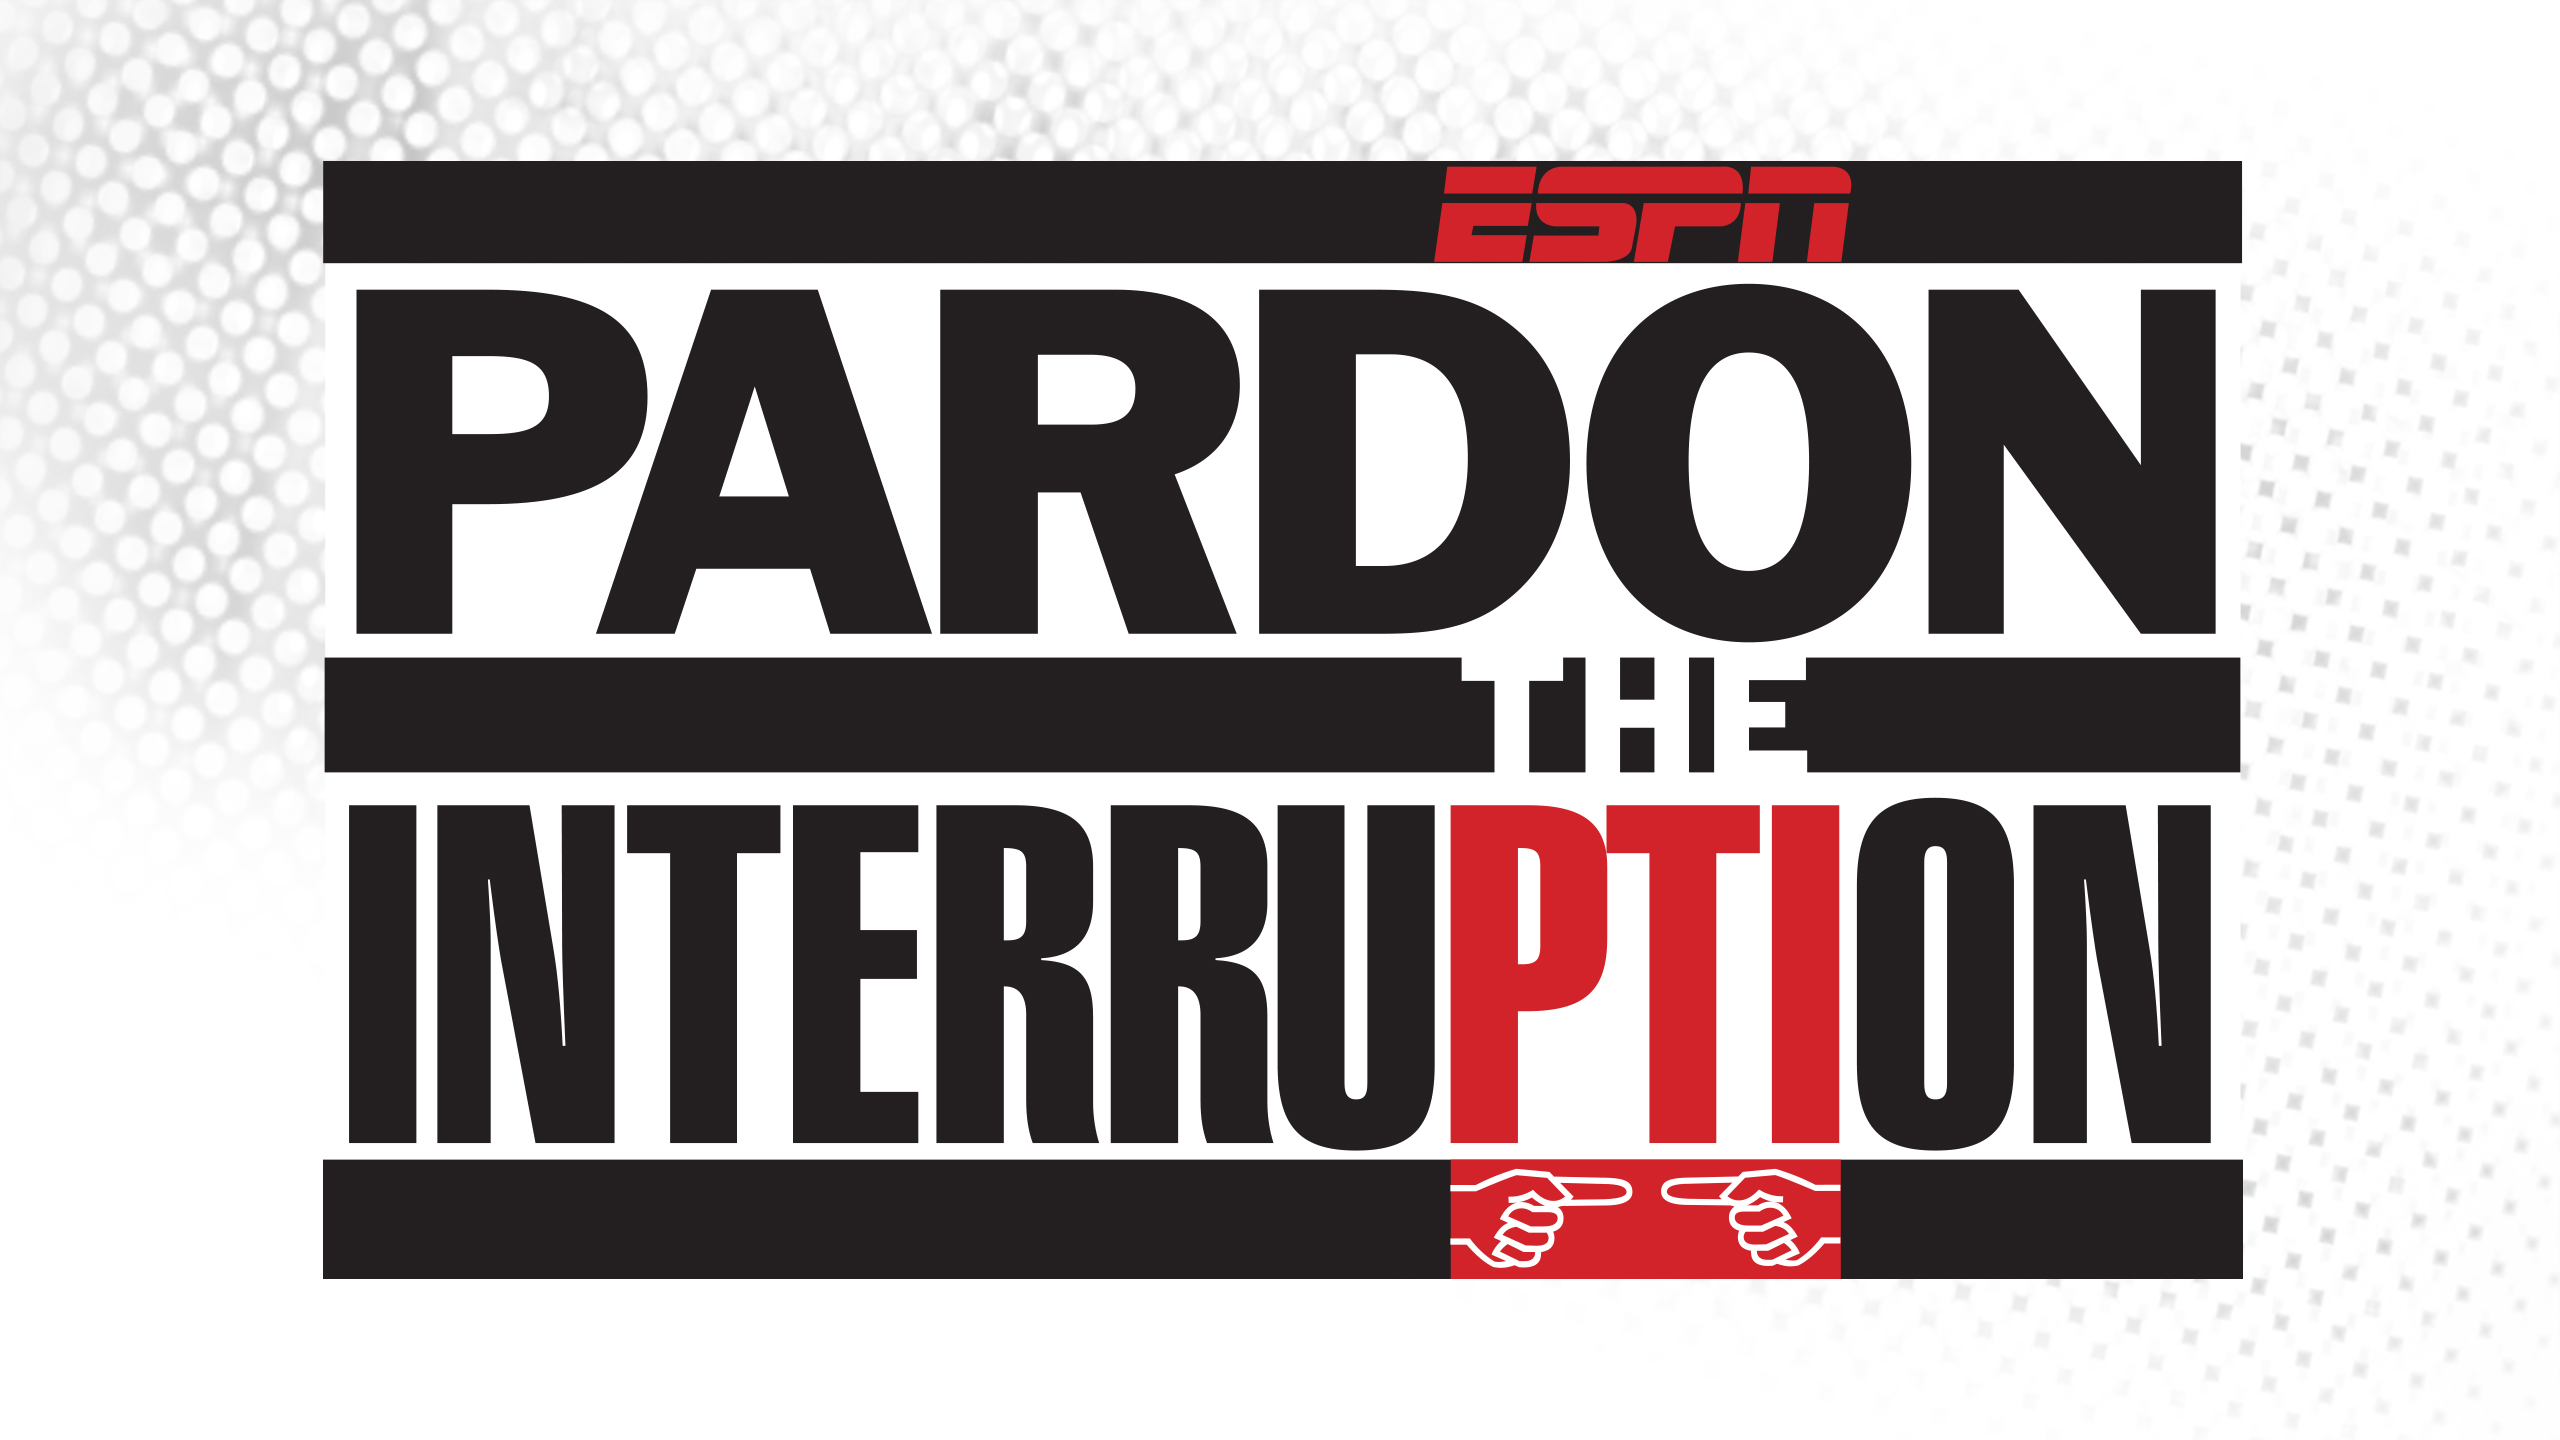 Thu, 9/20 - Pardon The Interruption